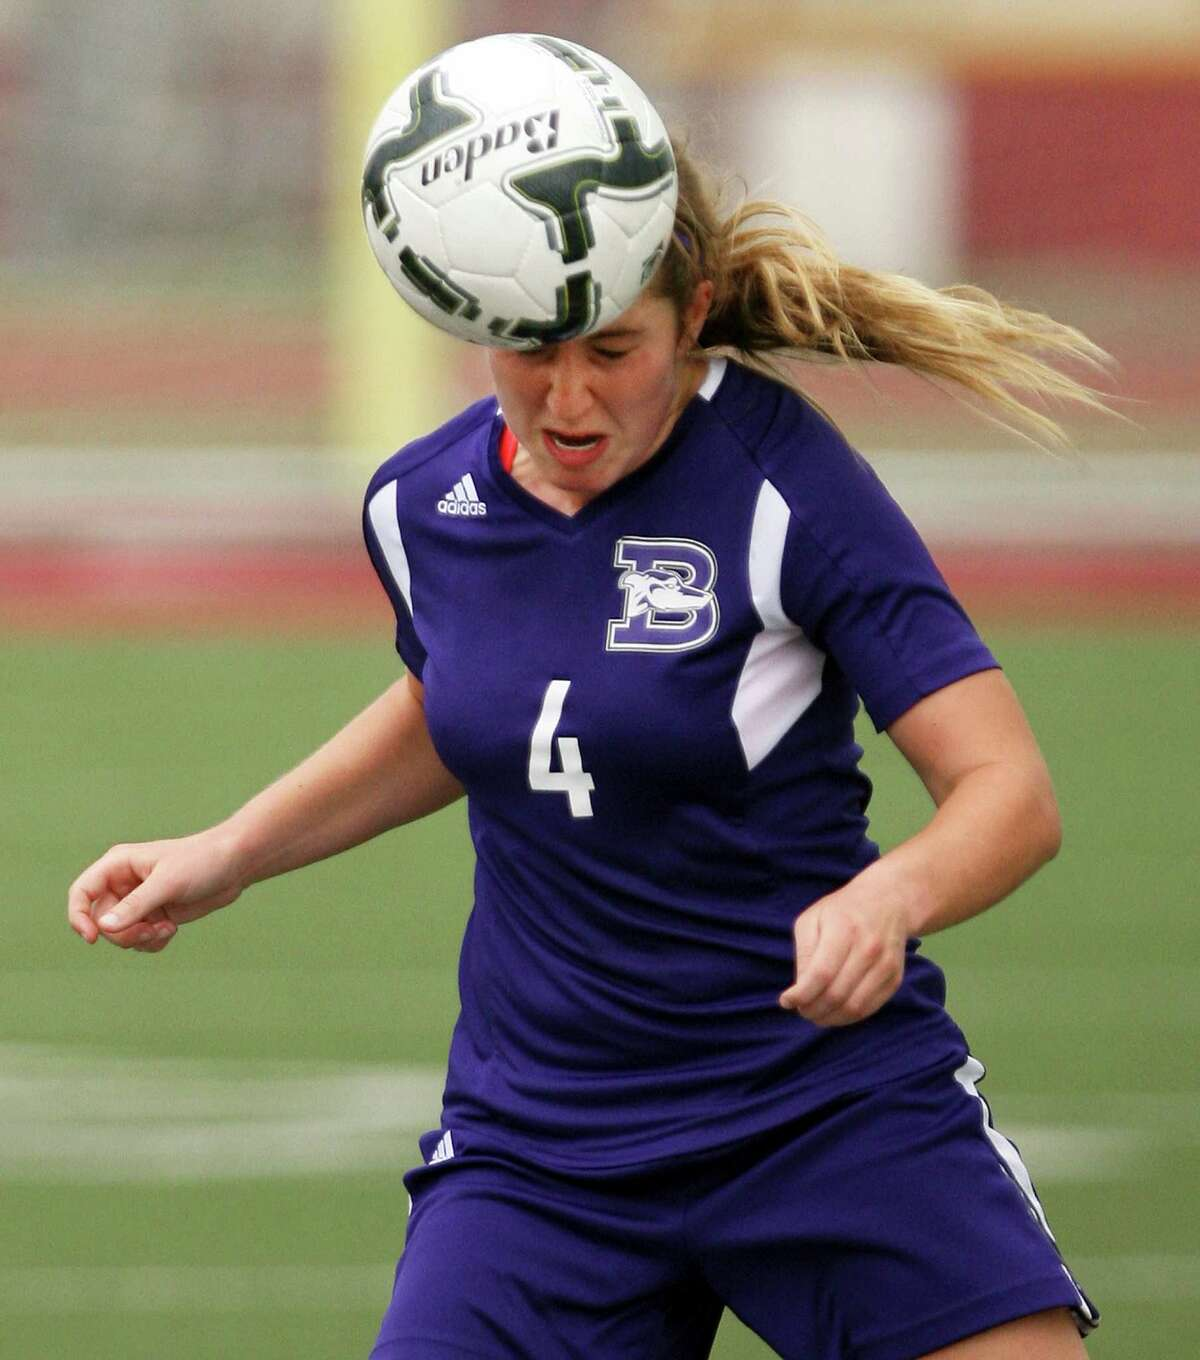 Boerne's Alexandra Chapman, 4, heads the ball in a in a 4A regional semifinal game against Kingsville April 10, 2015 in Mission.